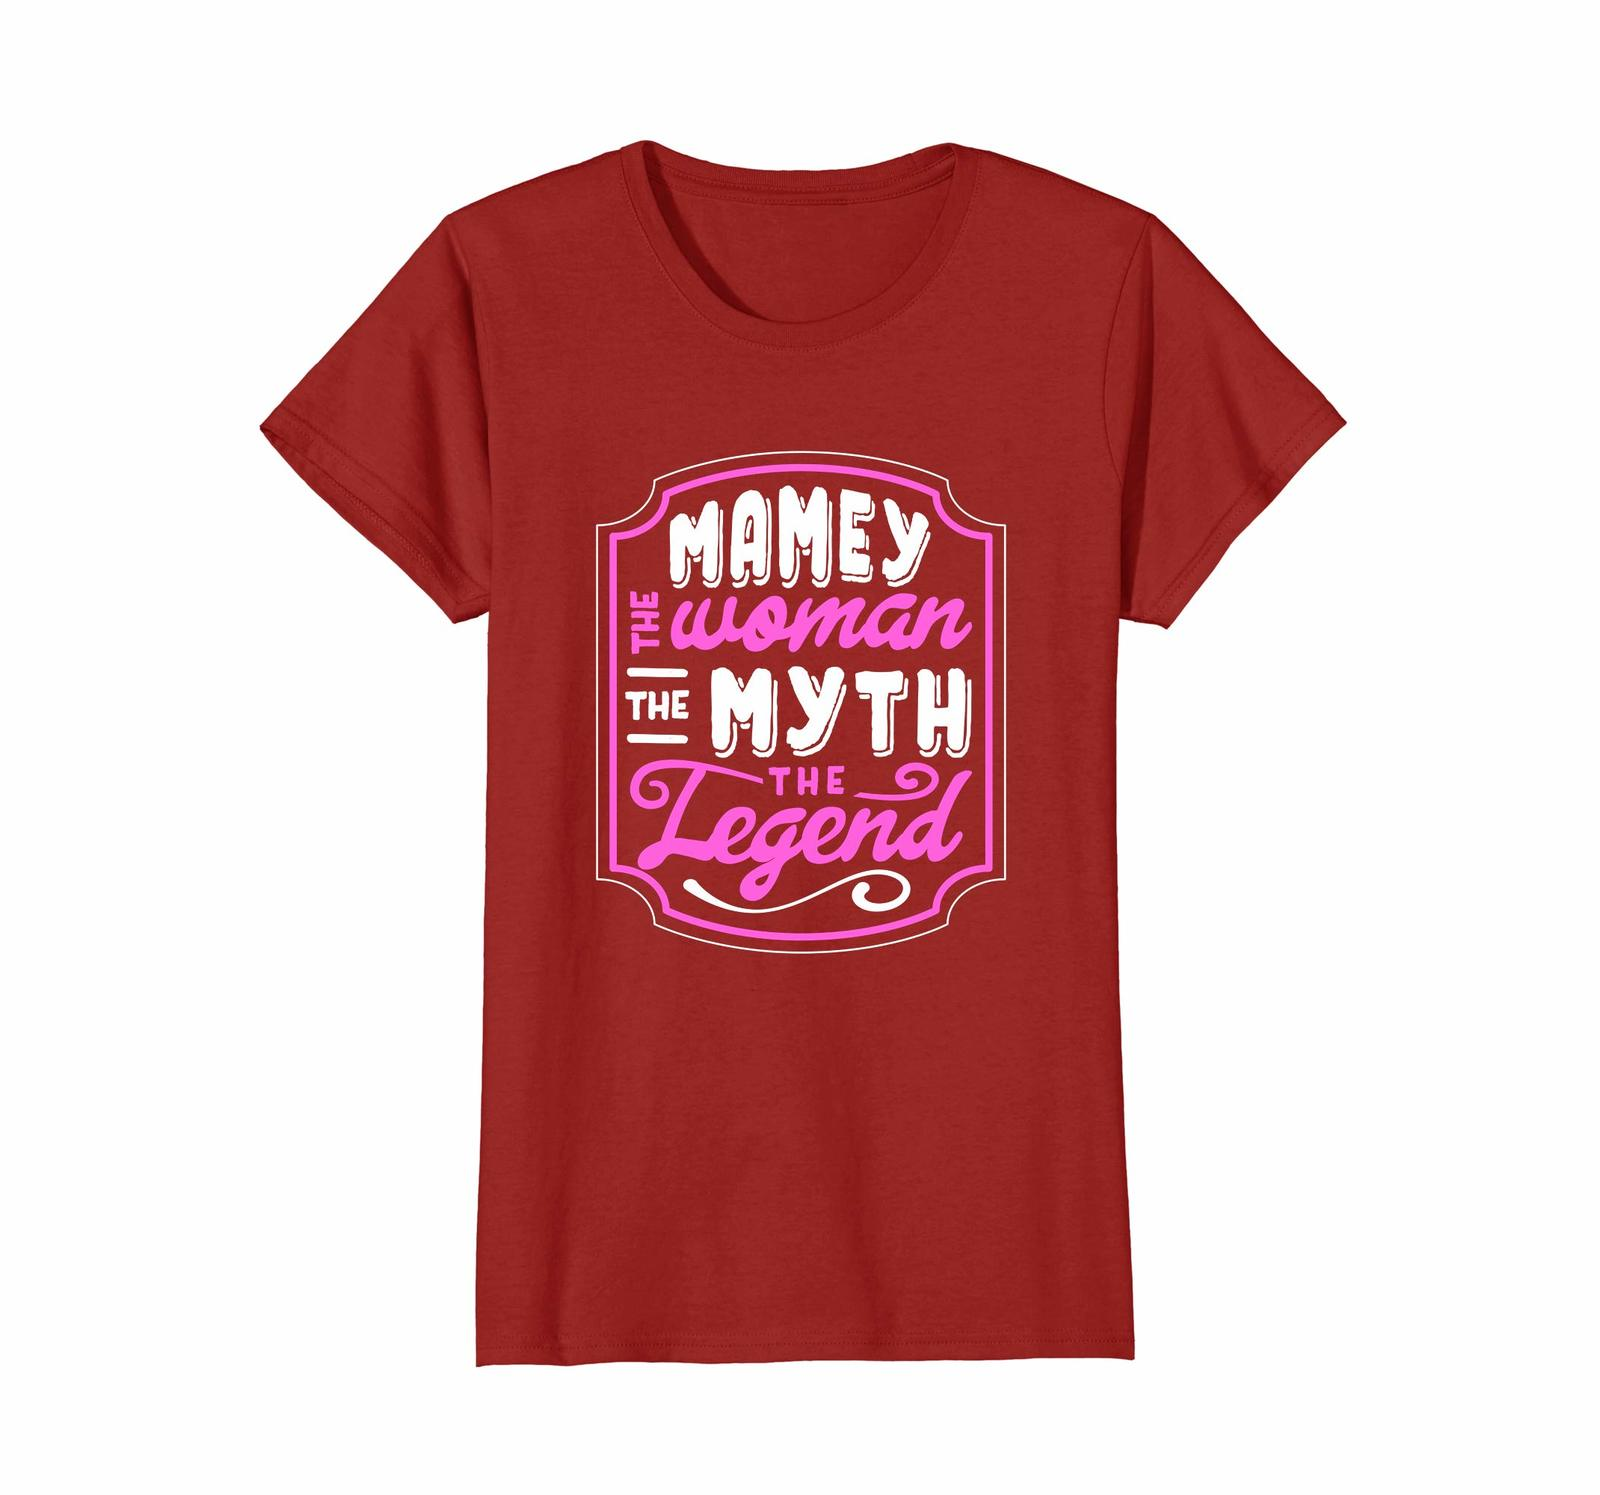 Primary image for Funny Shirts - My Favorite People Call Me Mamey Grandma Mother's T-shirt Wowen